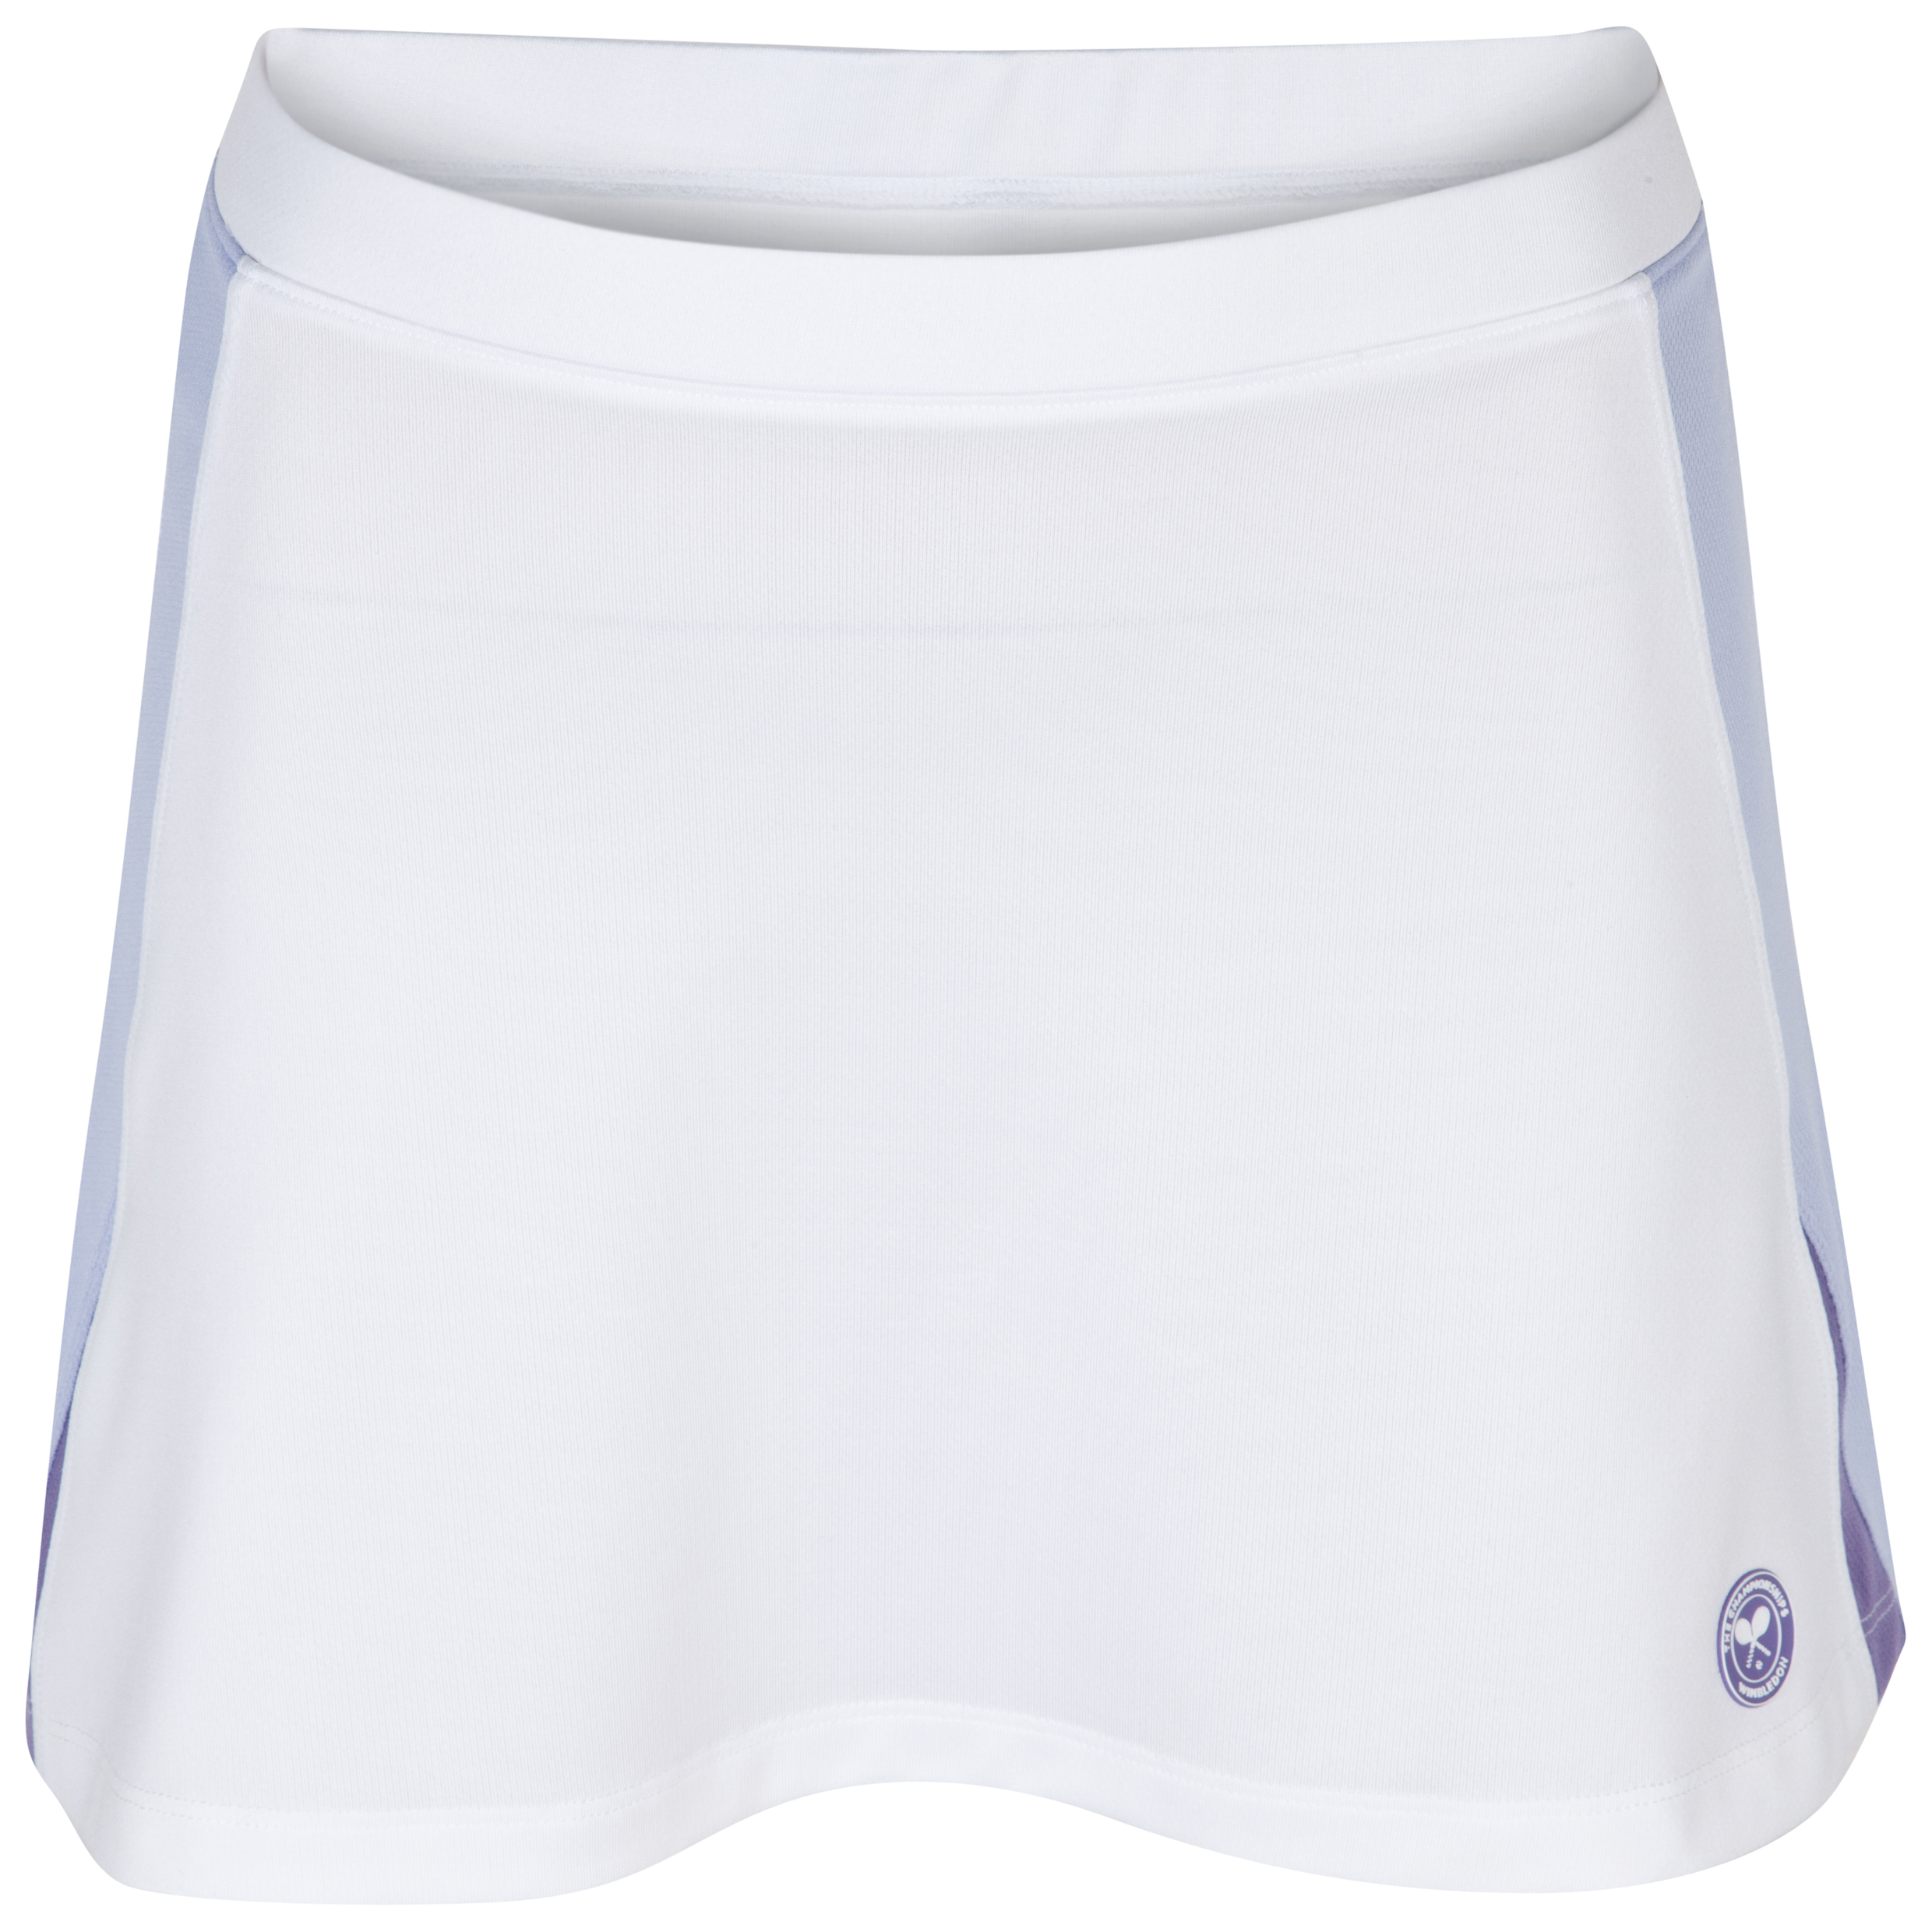 Wimbledon Skirt - Girls - White